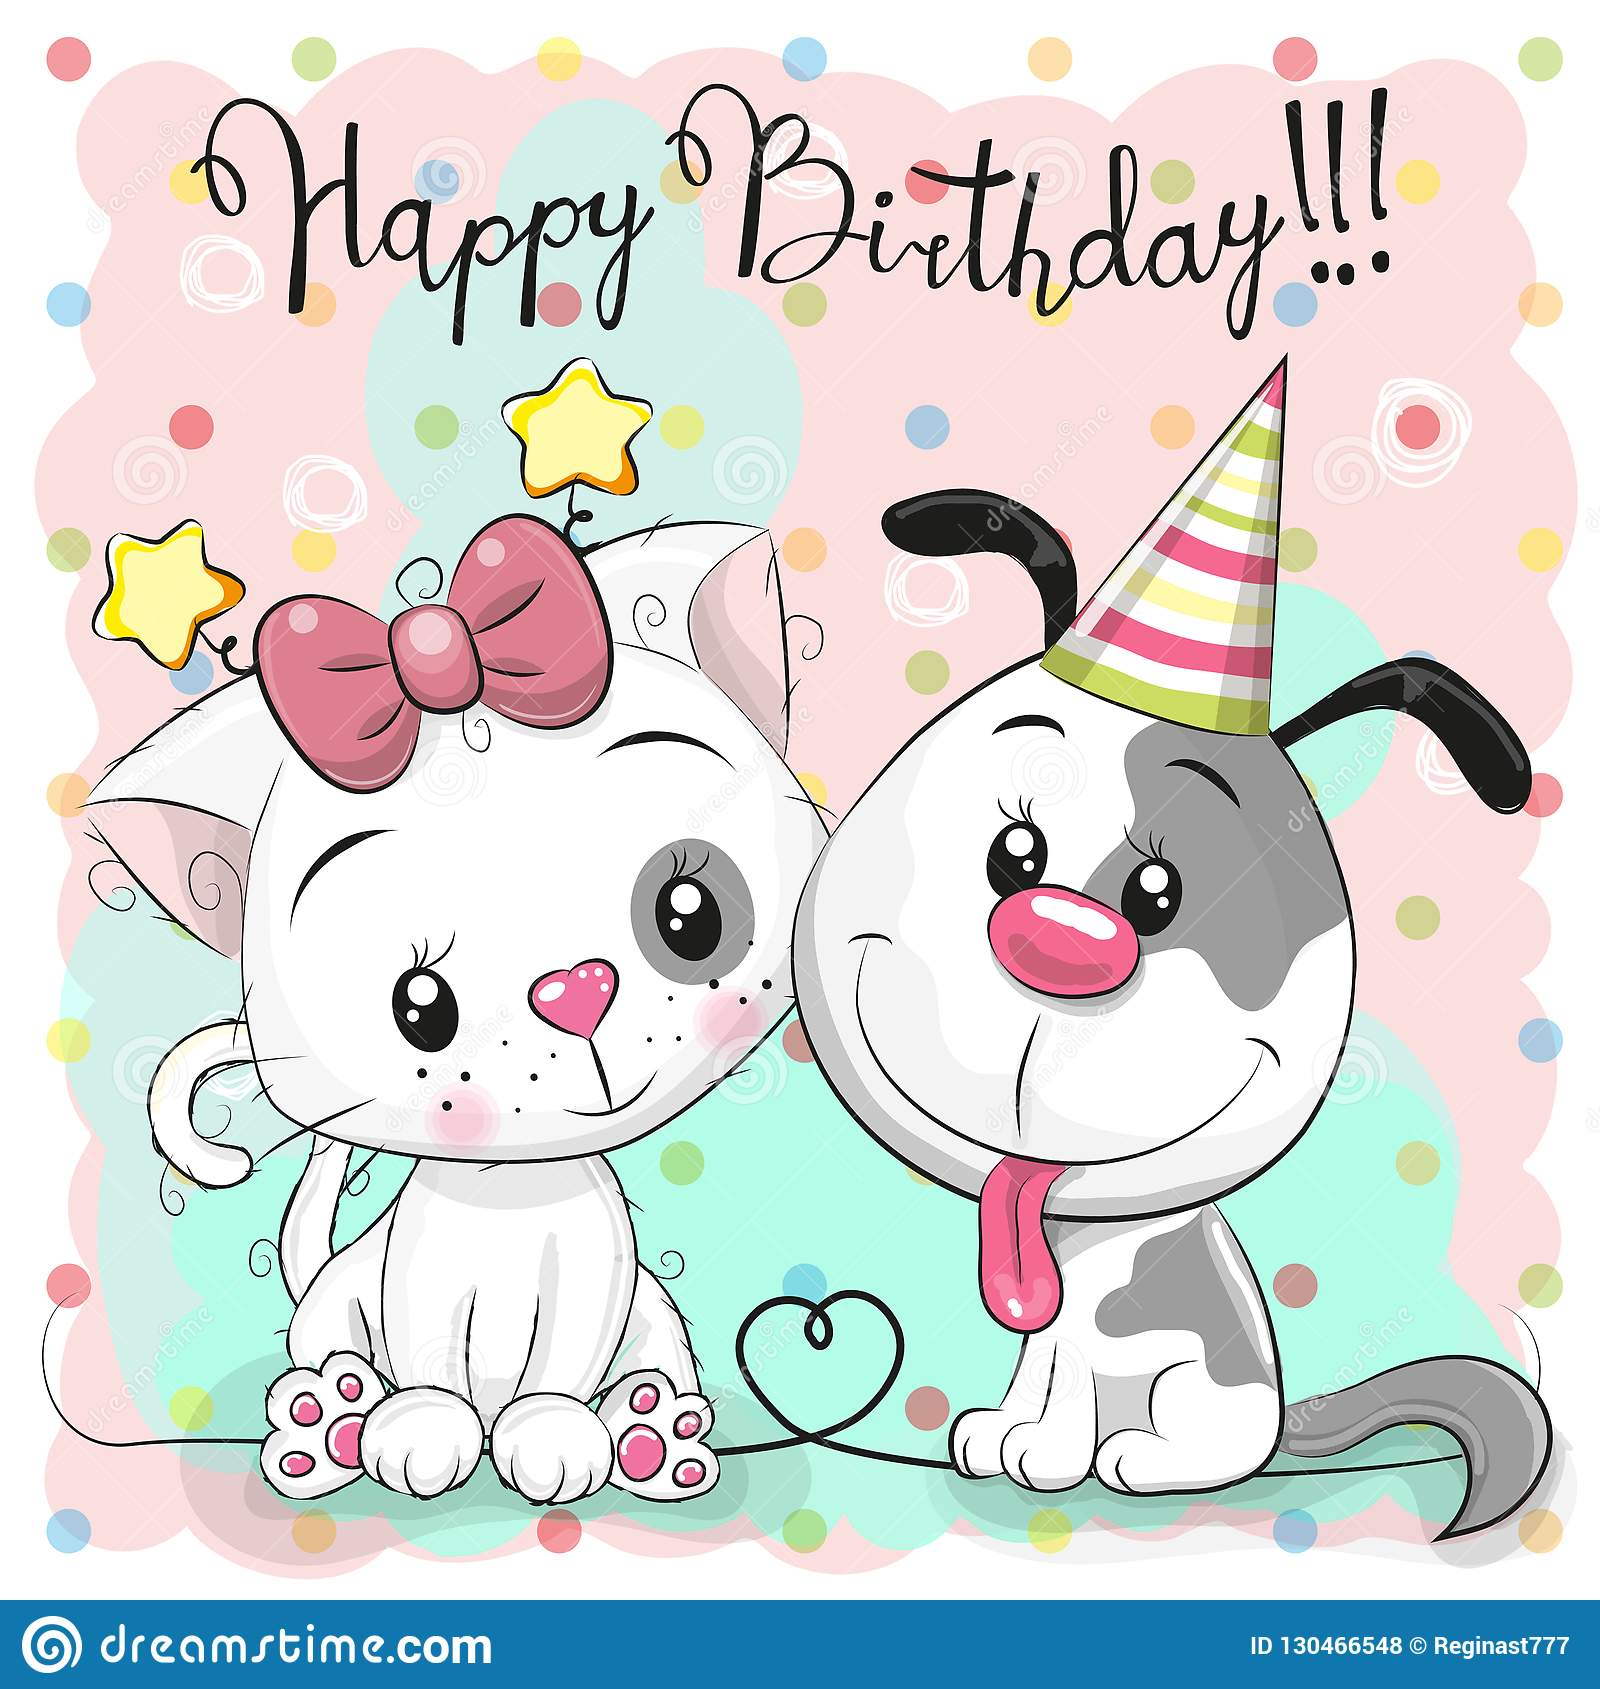 Greeting Birthday Card With Cute Cartoon Cat And Dog